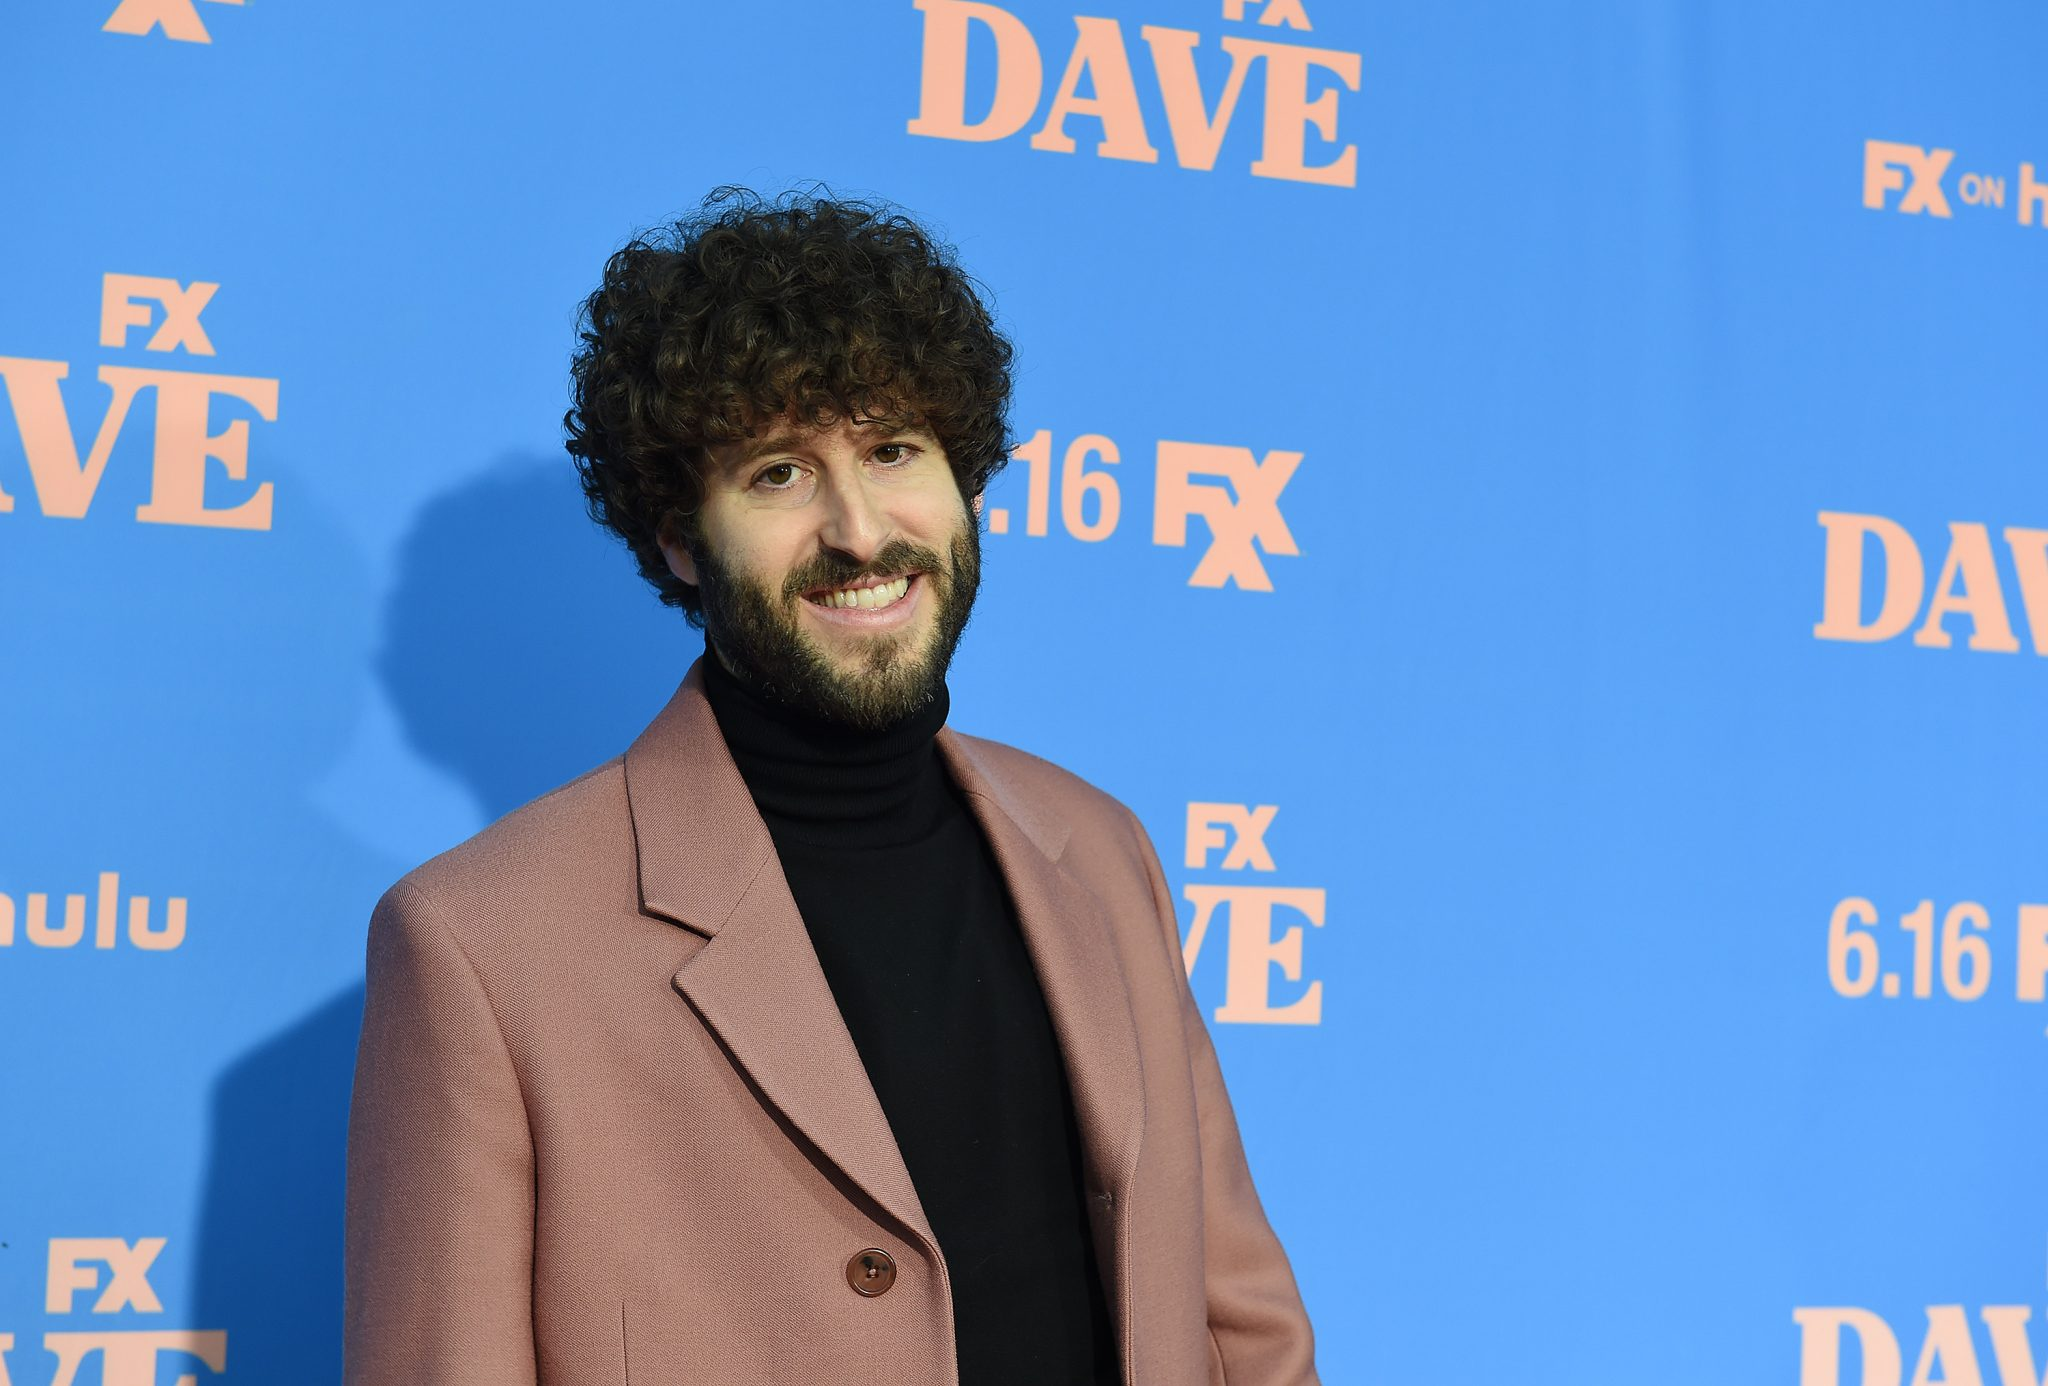 """Dave Burd attends the Season Two Red Carpet event for FXX's """"DAVE"""" at the Greek Theater on June 10, 2021 in Los Angeles, California. (Photo by Frank Micelotta/FXX/PictureGroup)"""